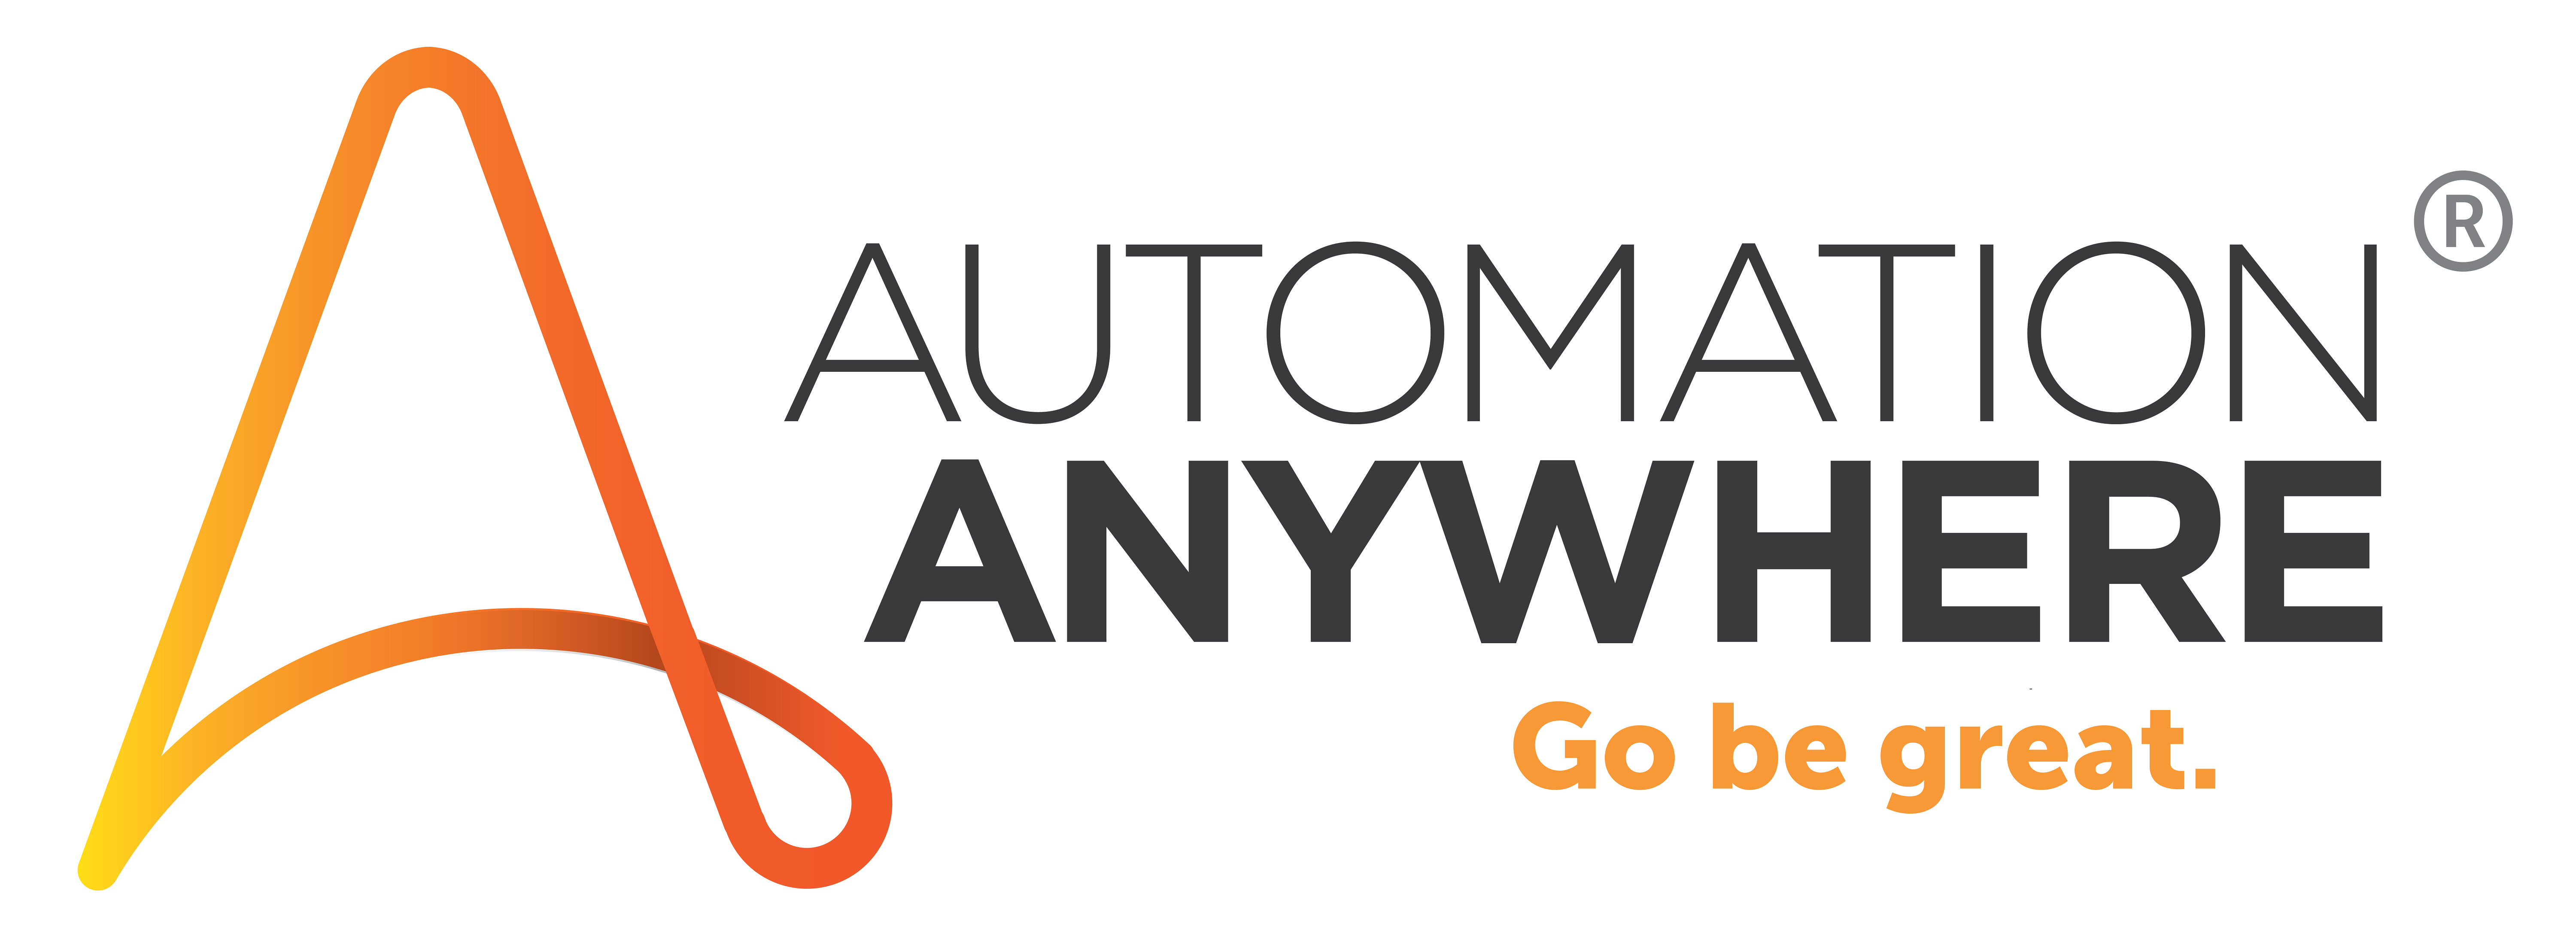 automation-anywhere-rpa-1